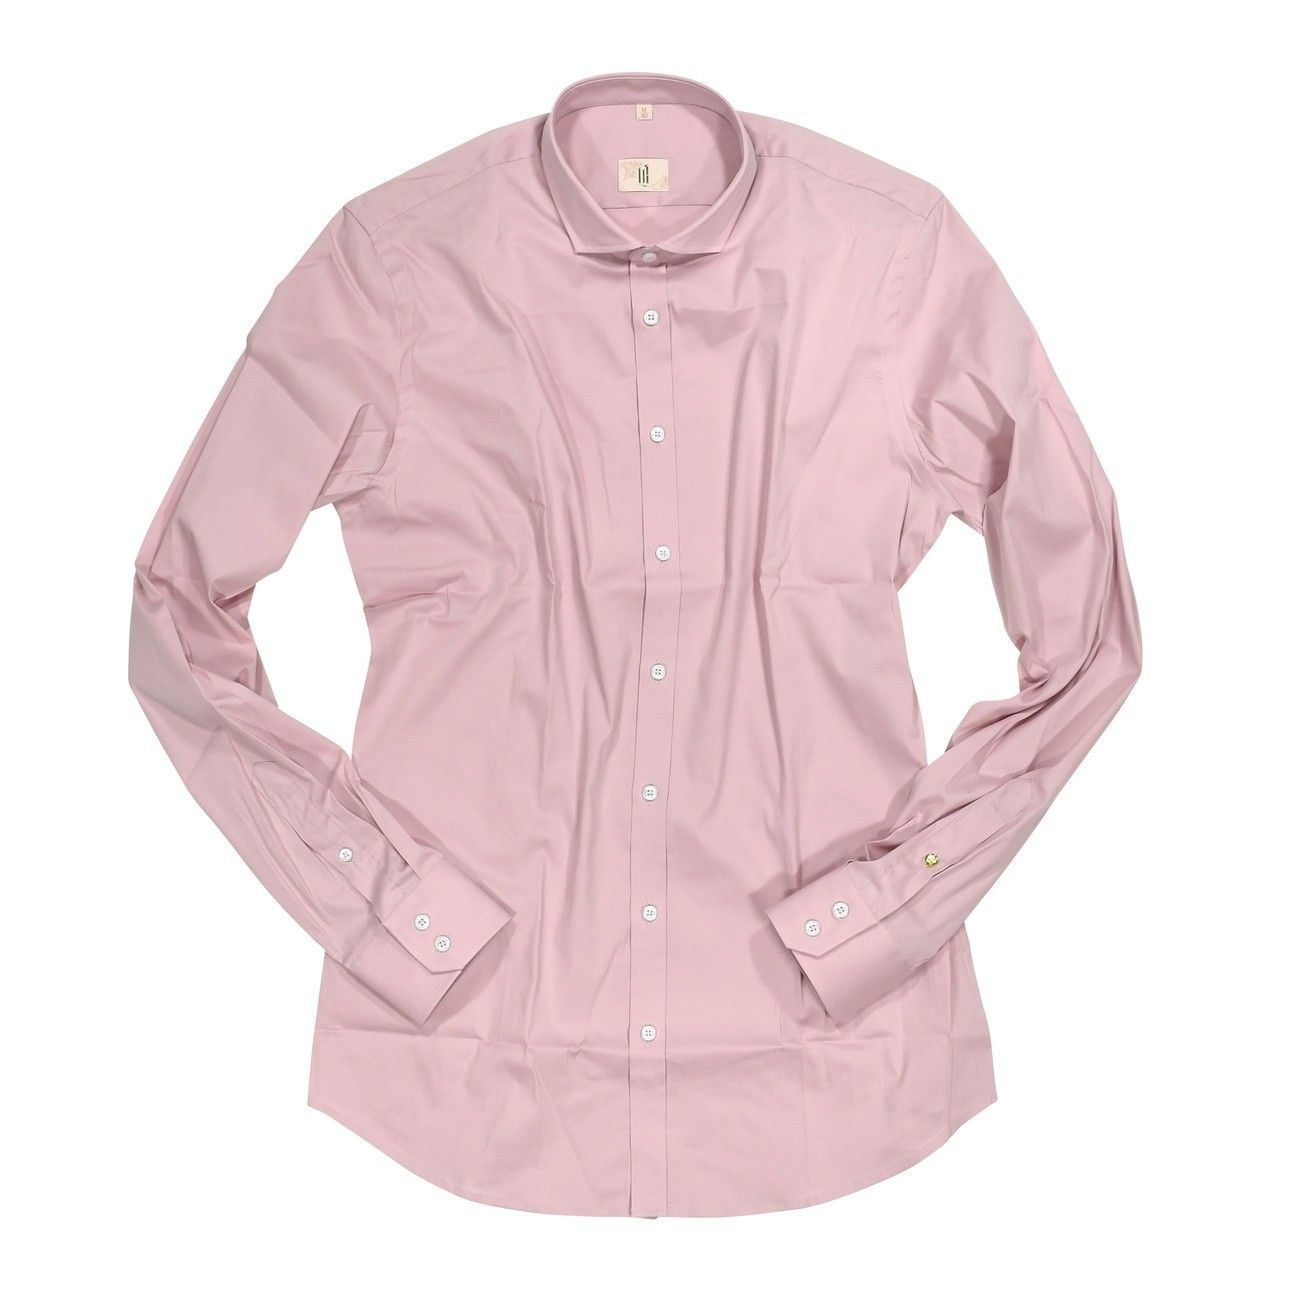 Q1 - Herren Hemd - Hemd Slim Fit - Rose